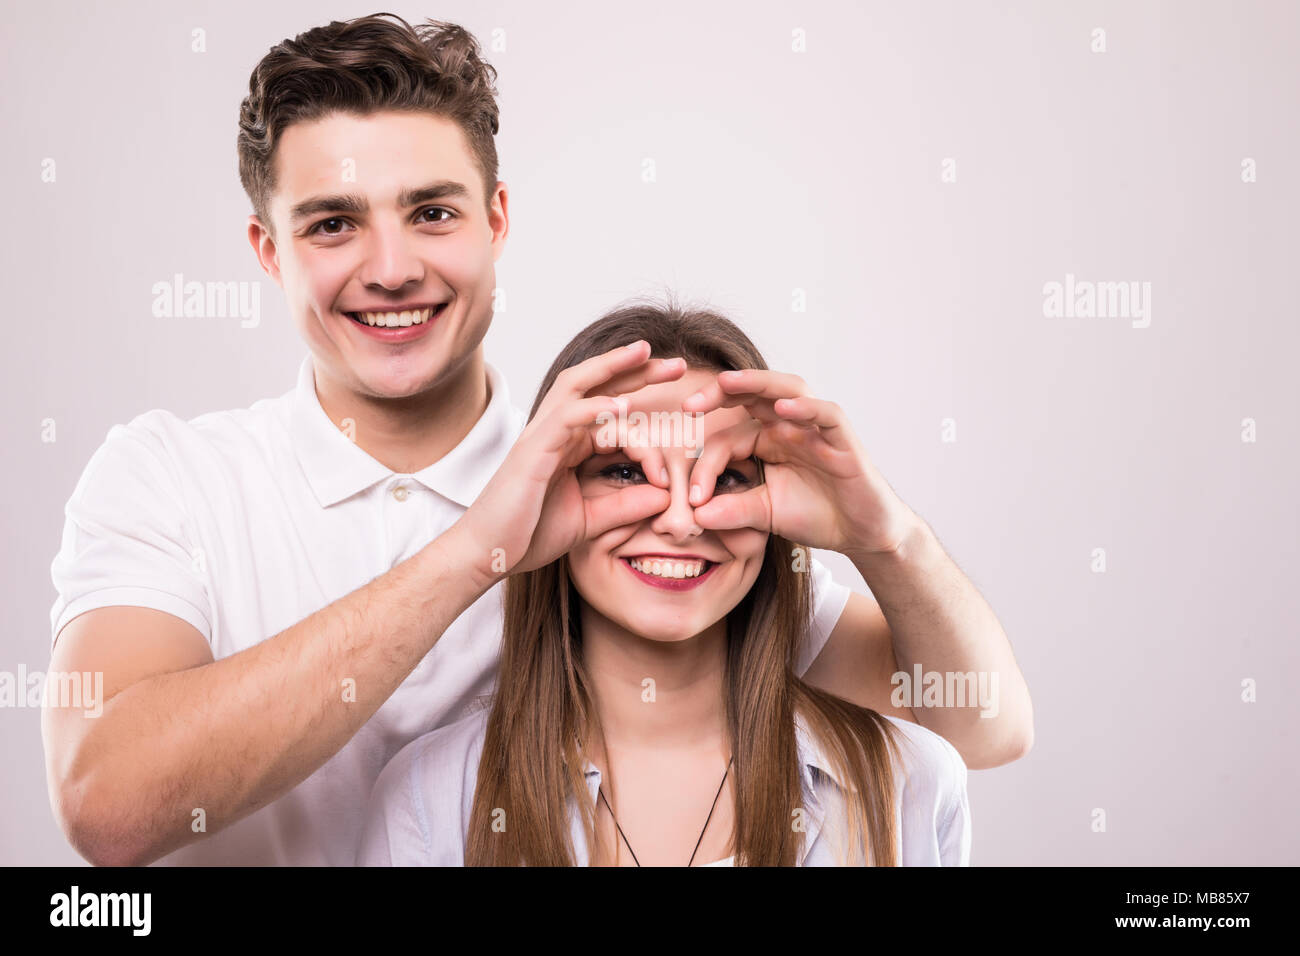 Concept of having funtime and grimacing, behaving like kids. Close up photo of two happy people making binoculars with their hands and showing tongues - Stock Image